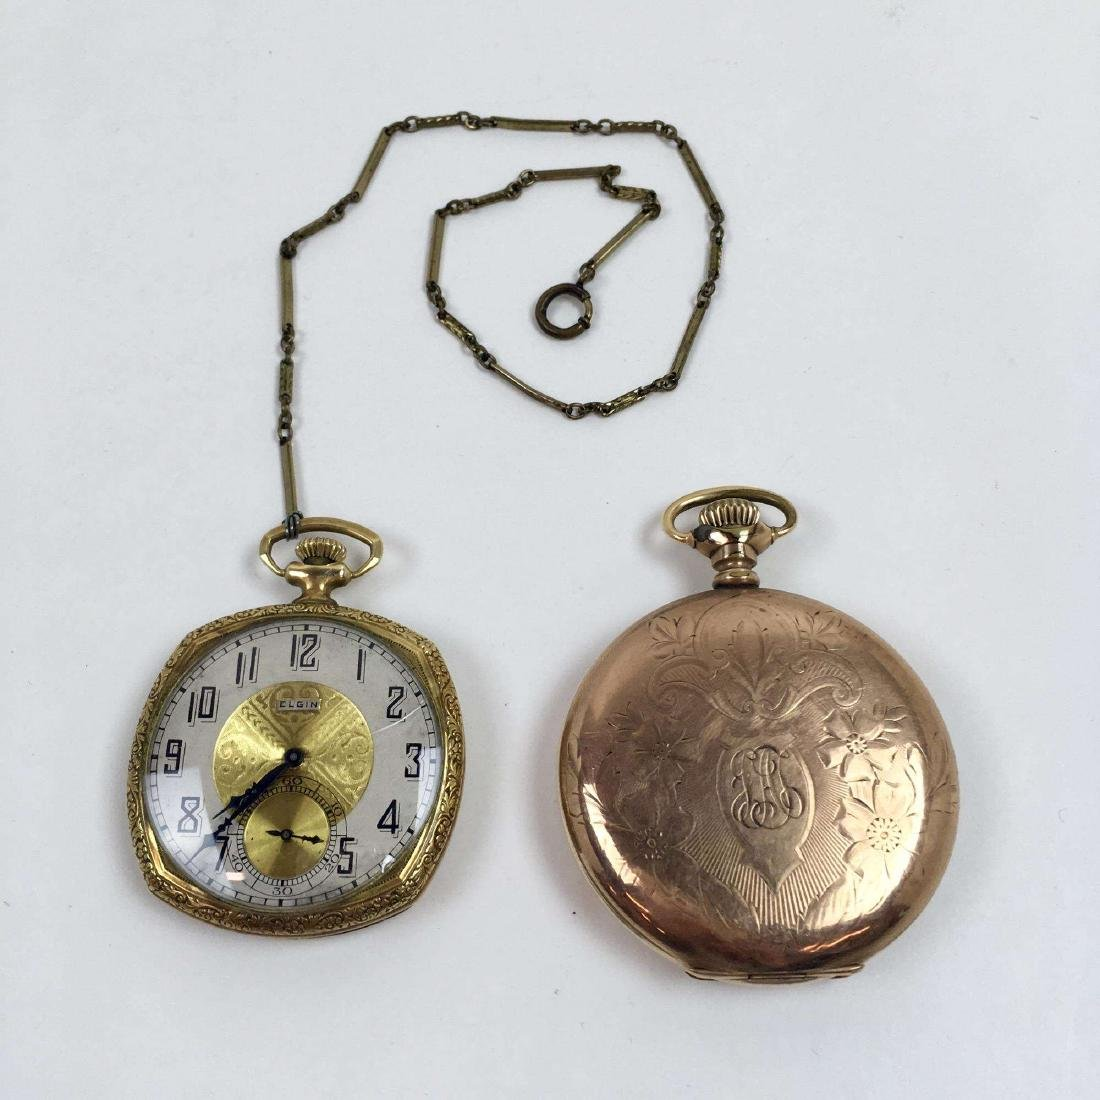 TWO VINTAGE ELGIN POCKET WATCHES